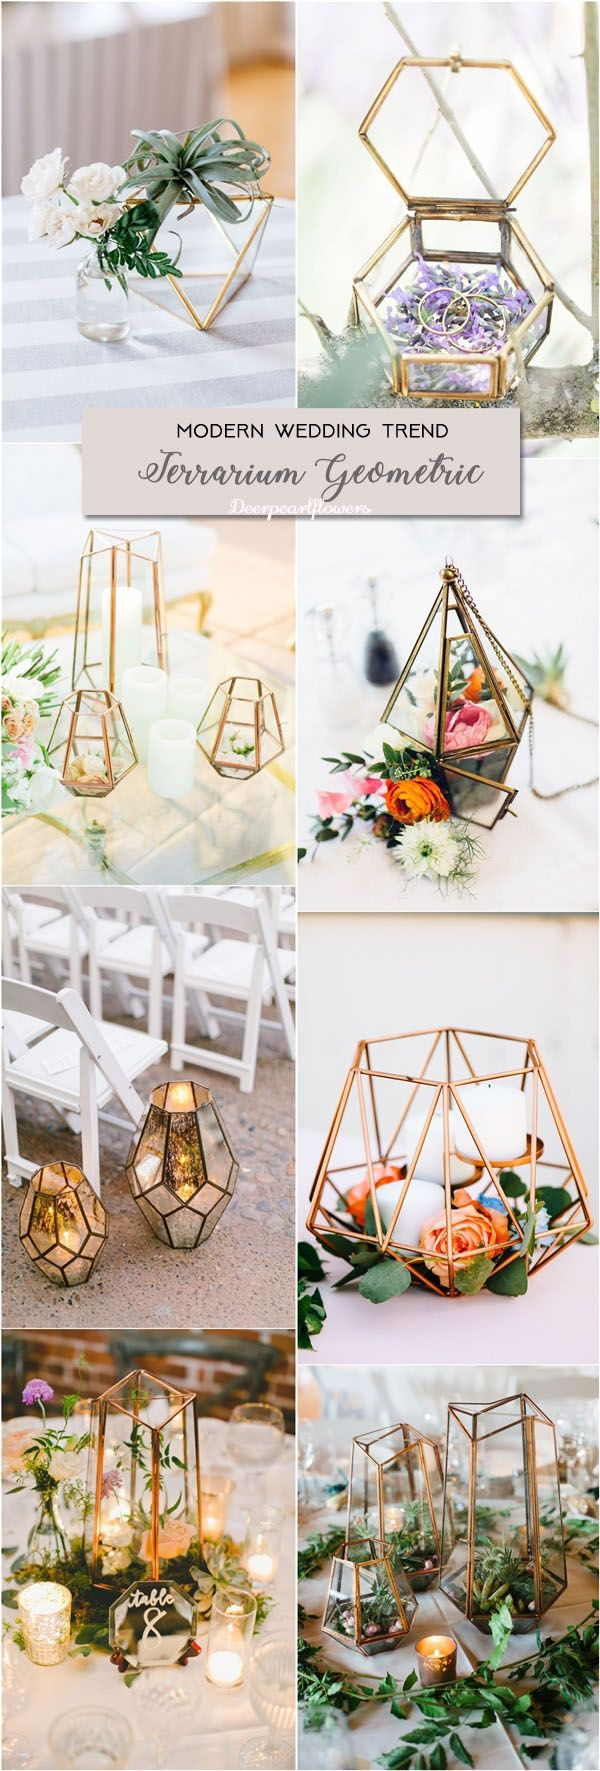 terrarium geometric wedding ideas for modern weddings / http://www.deerpearlflowers.com/modern-wedding-theme-ideas/